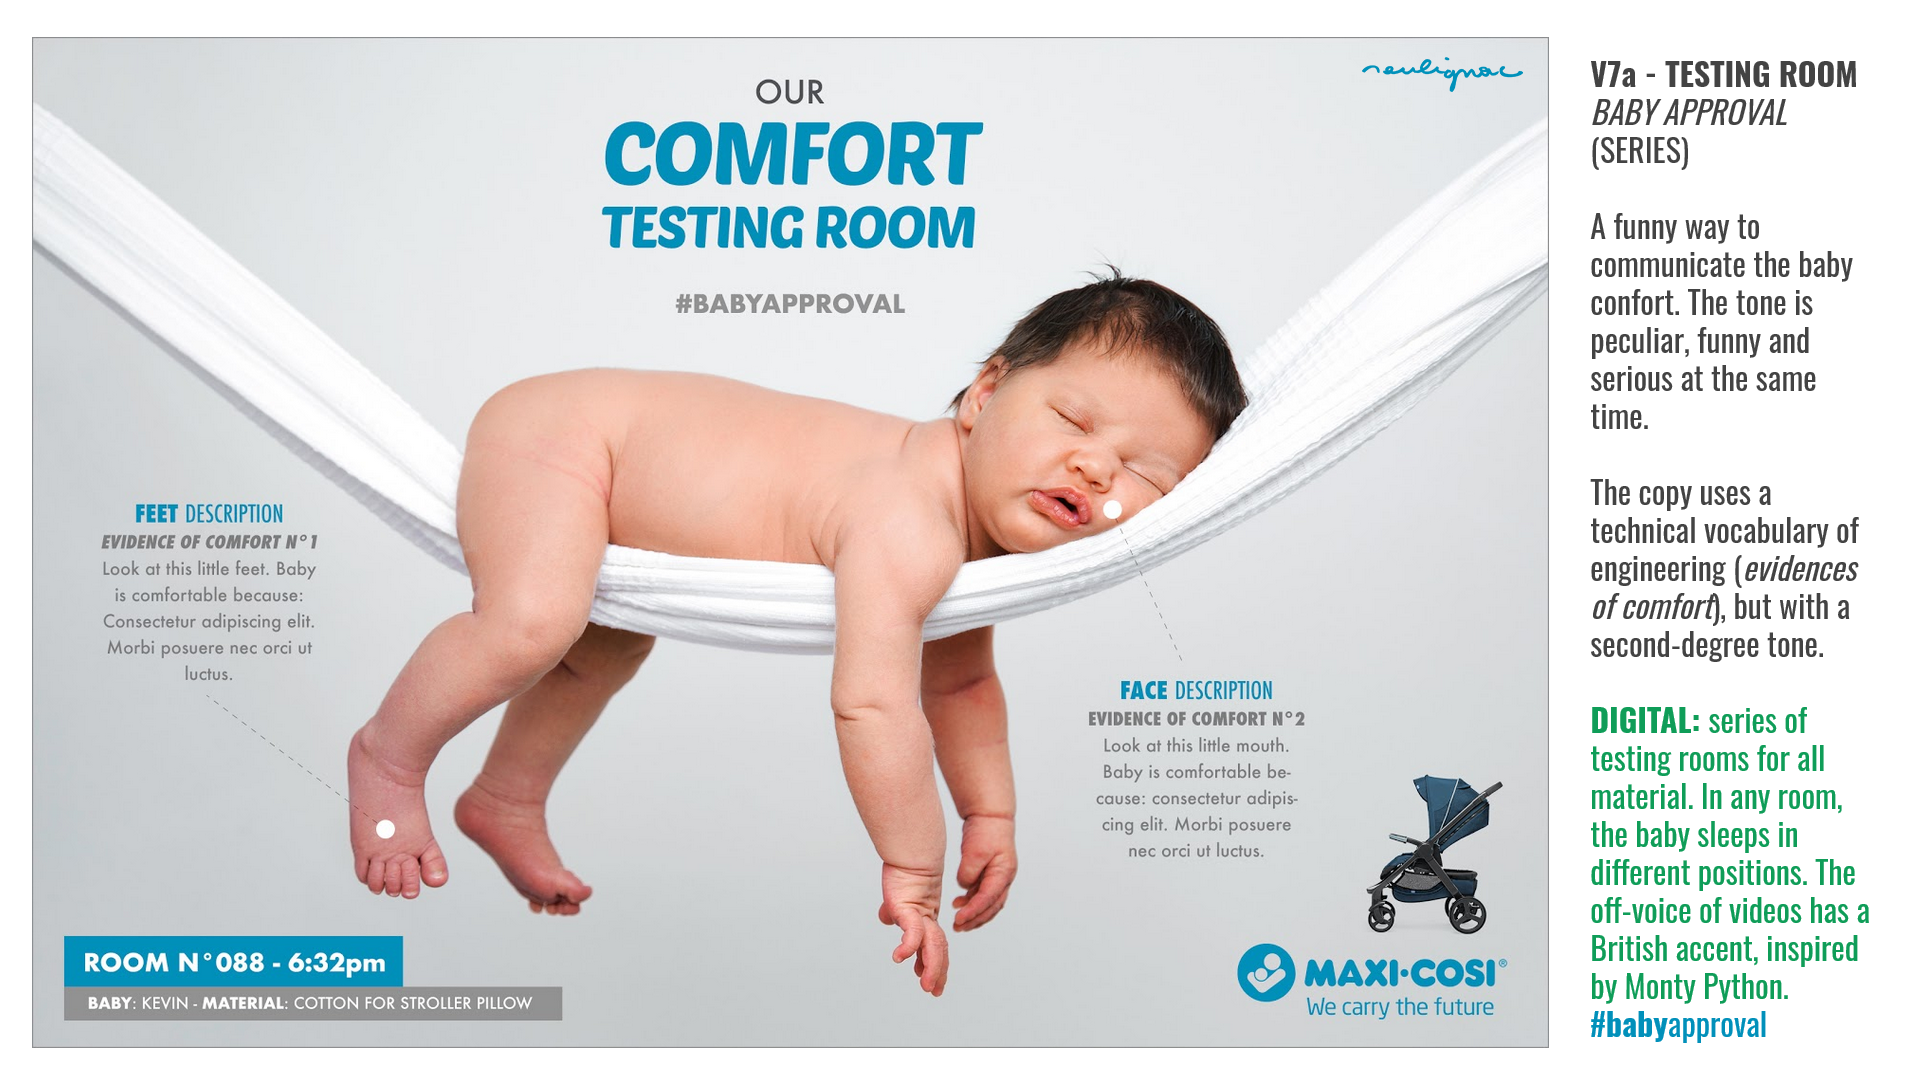 Maxi-Cosi China - Dorel Juvenile - Lila stroller key visual - Researches by Francois Soulignac, Digital Creative & Art Direction - MADJOR Labbrand Shanghai